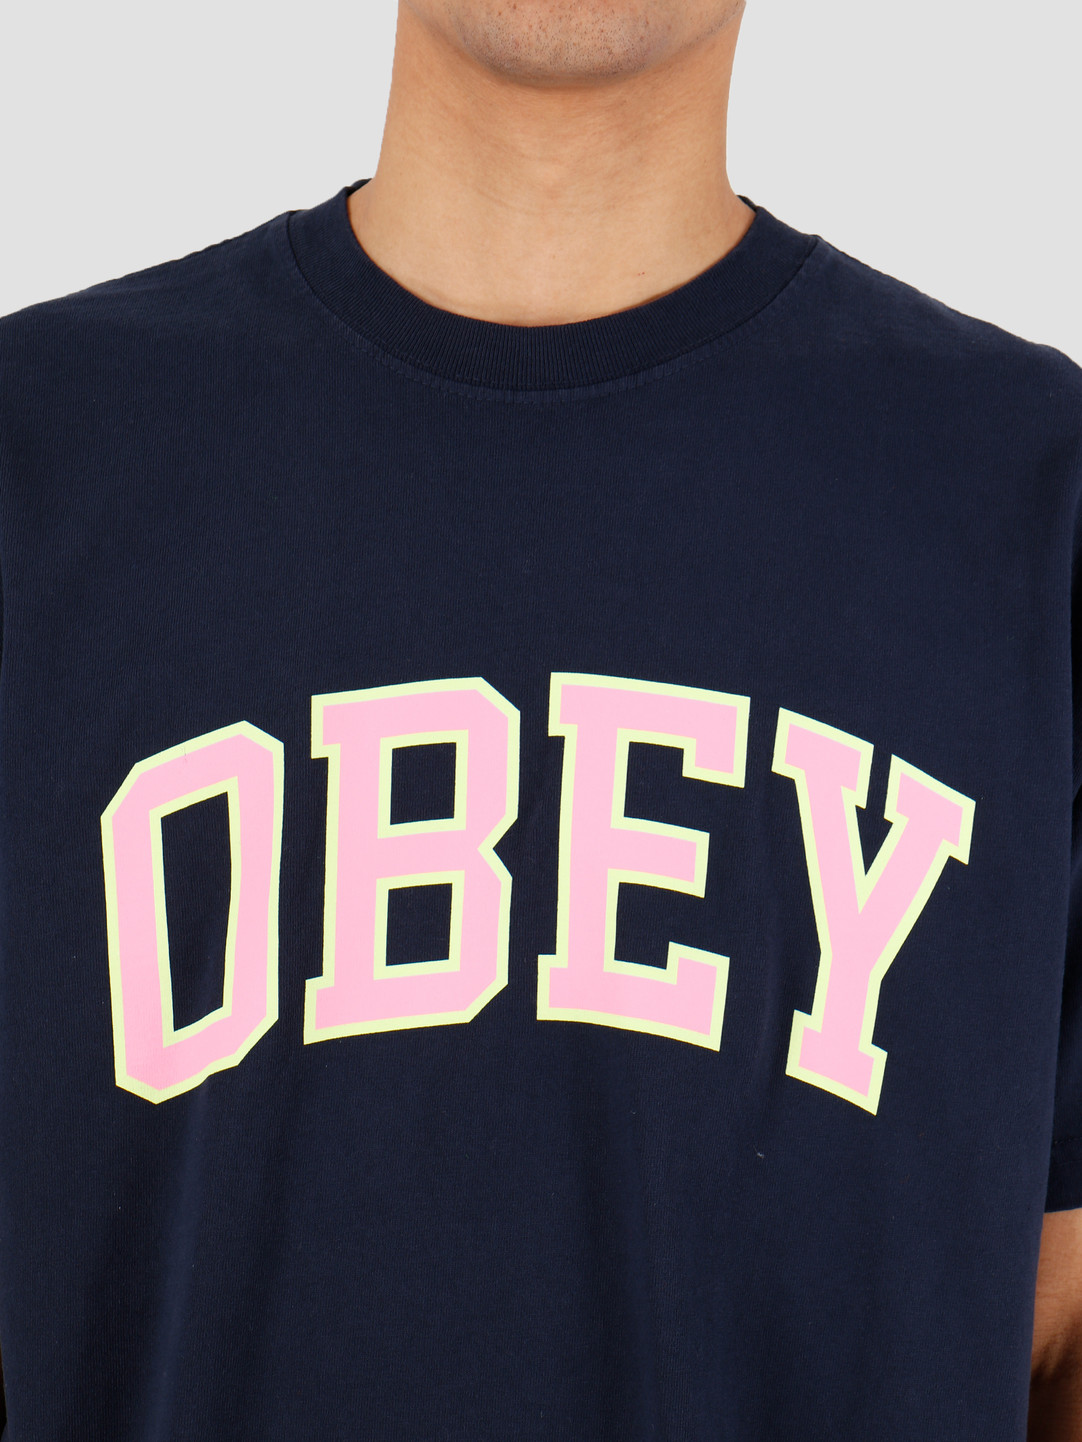 https://cdn.webshopapp.com/shops/260322/files/309507701/1082x1442x2/obey-obey-obey-academic-2-navy-166912135nvy.jpg